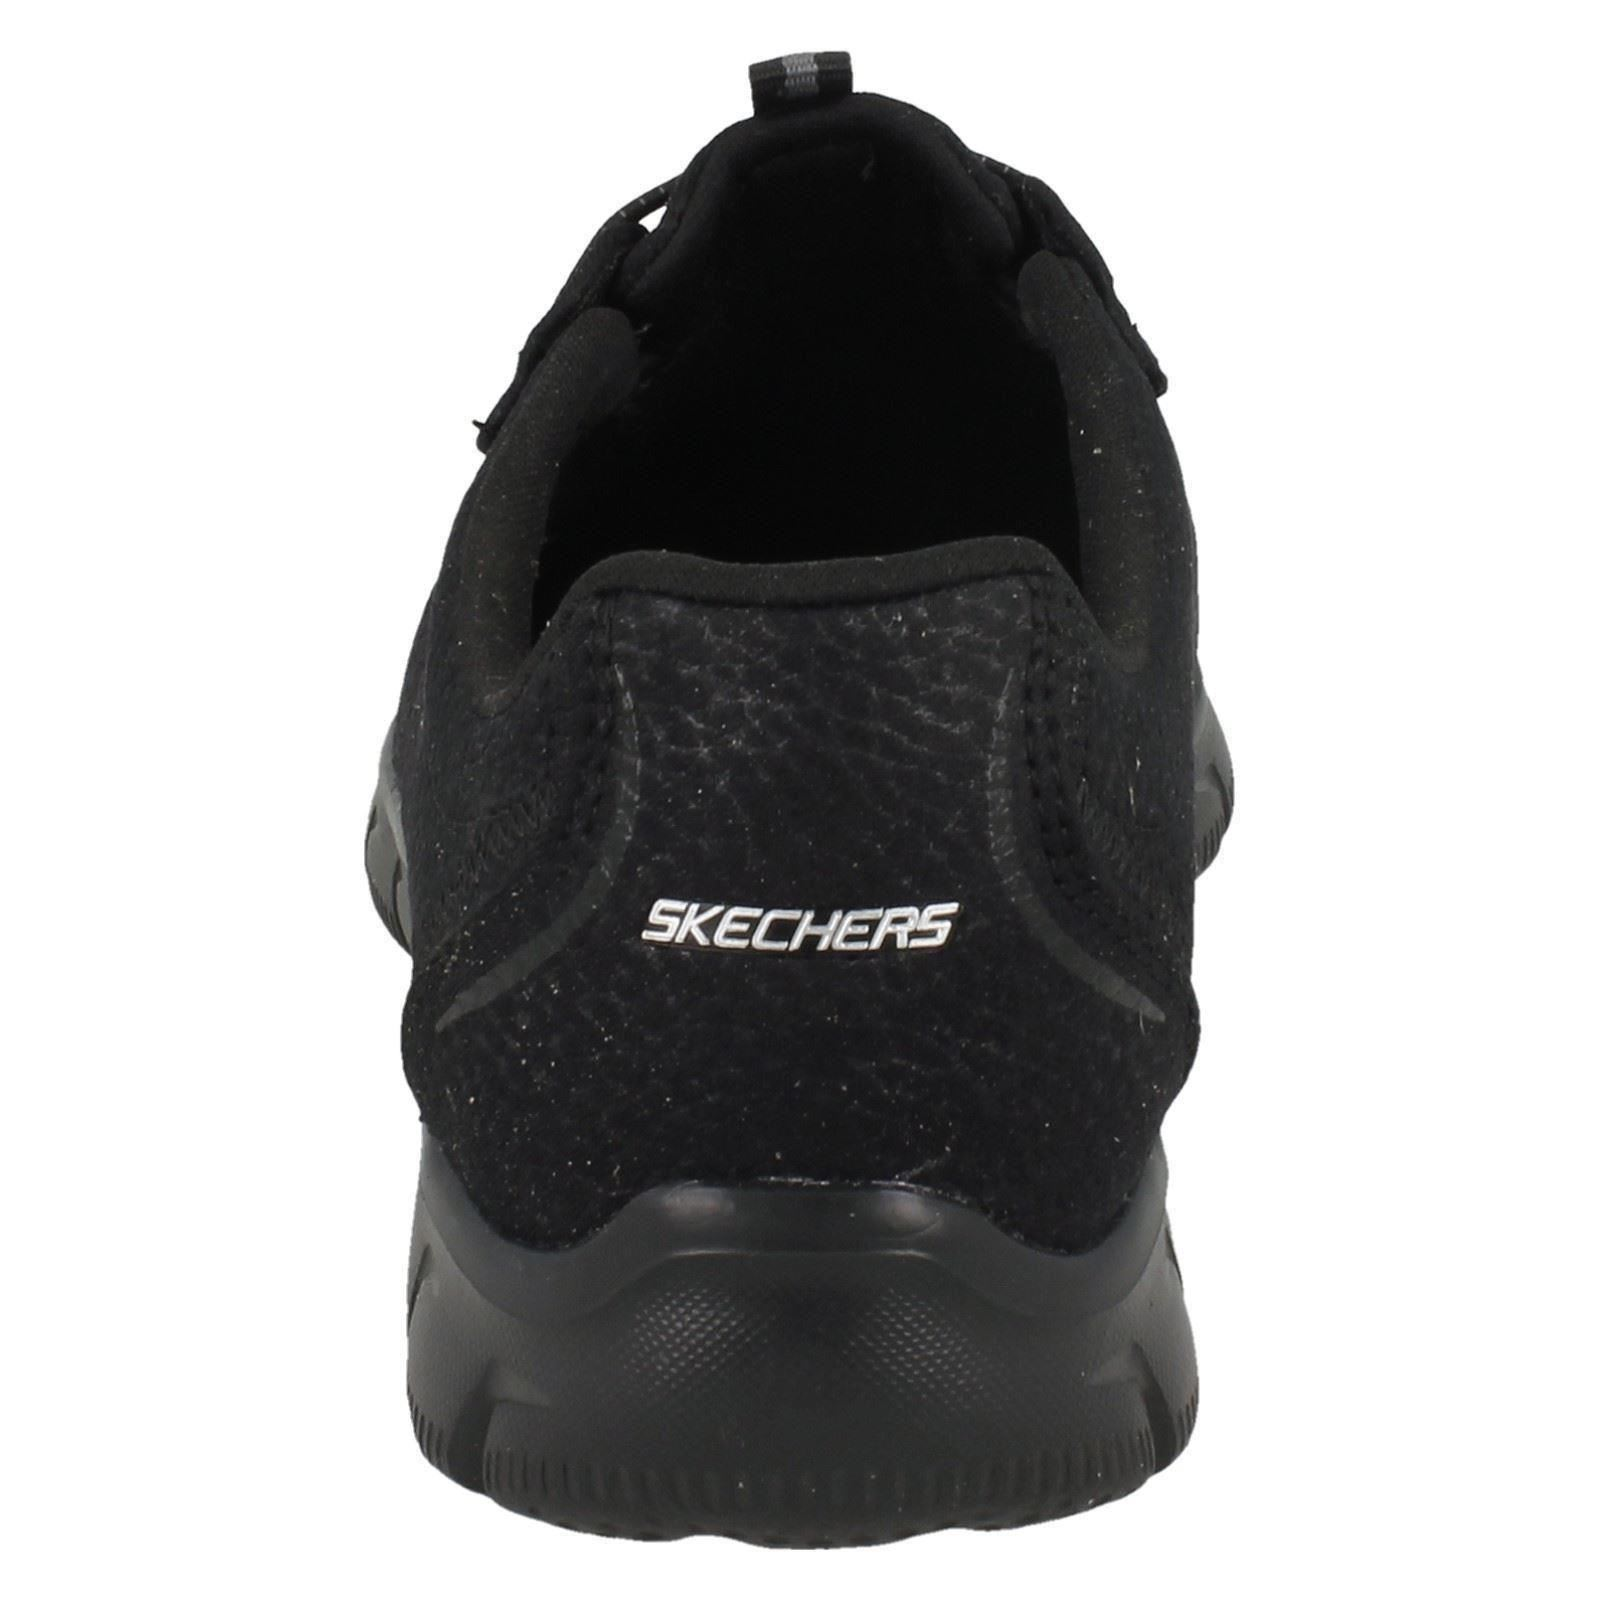 Ta Black Casual On Charge Slip Avrundet Ladies Textile Skechers Trainers Toe 12407 8SwTqcgq